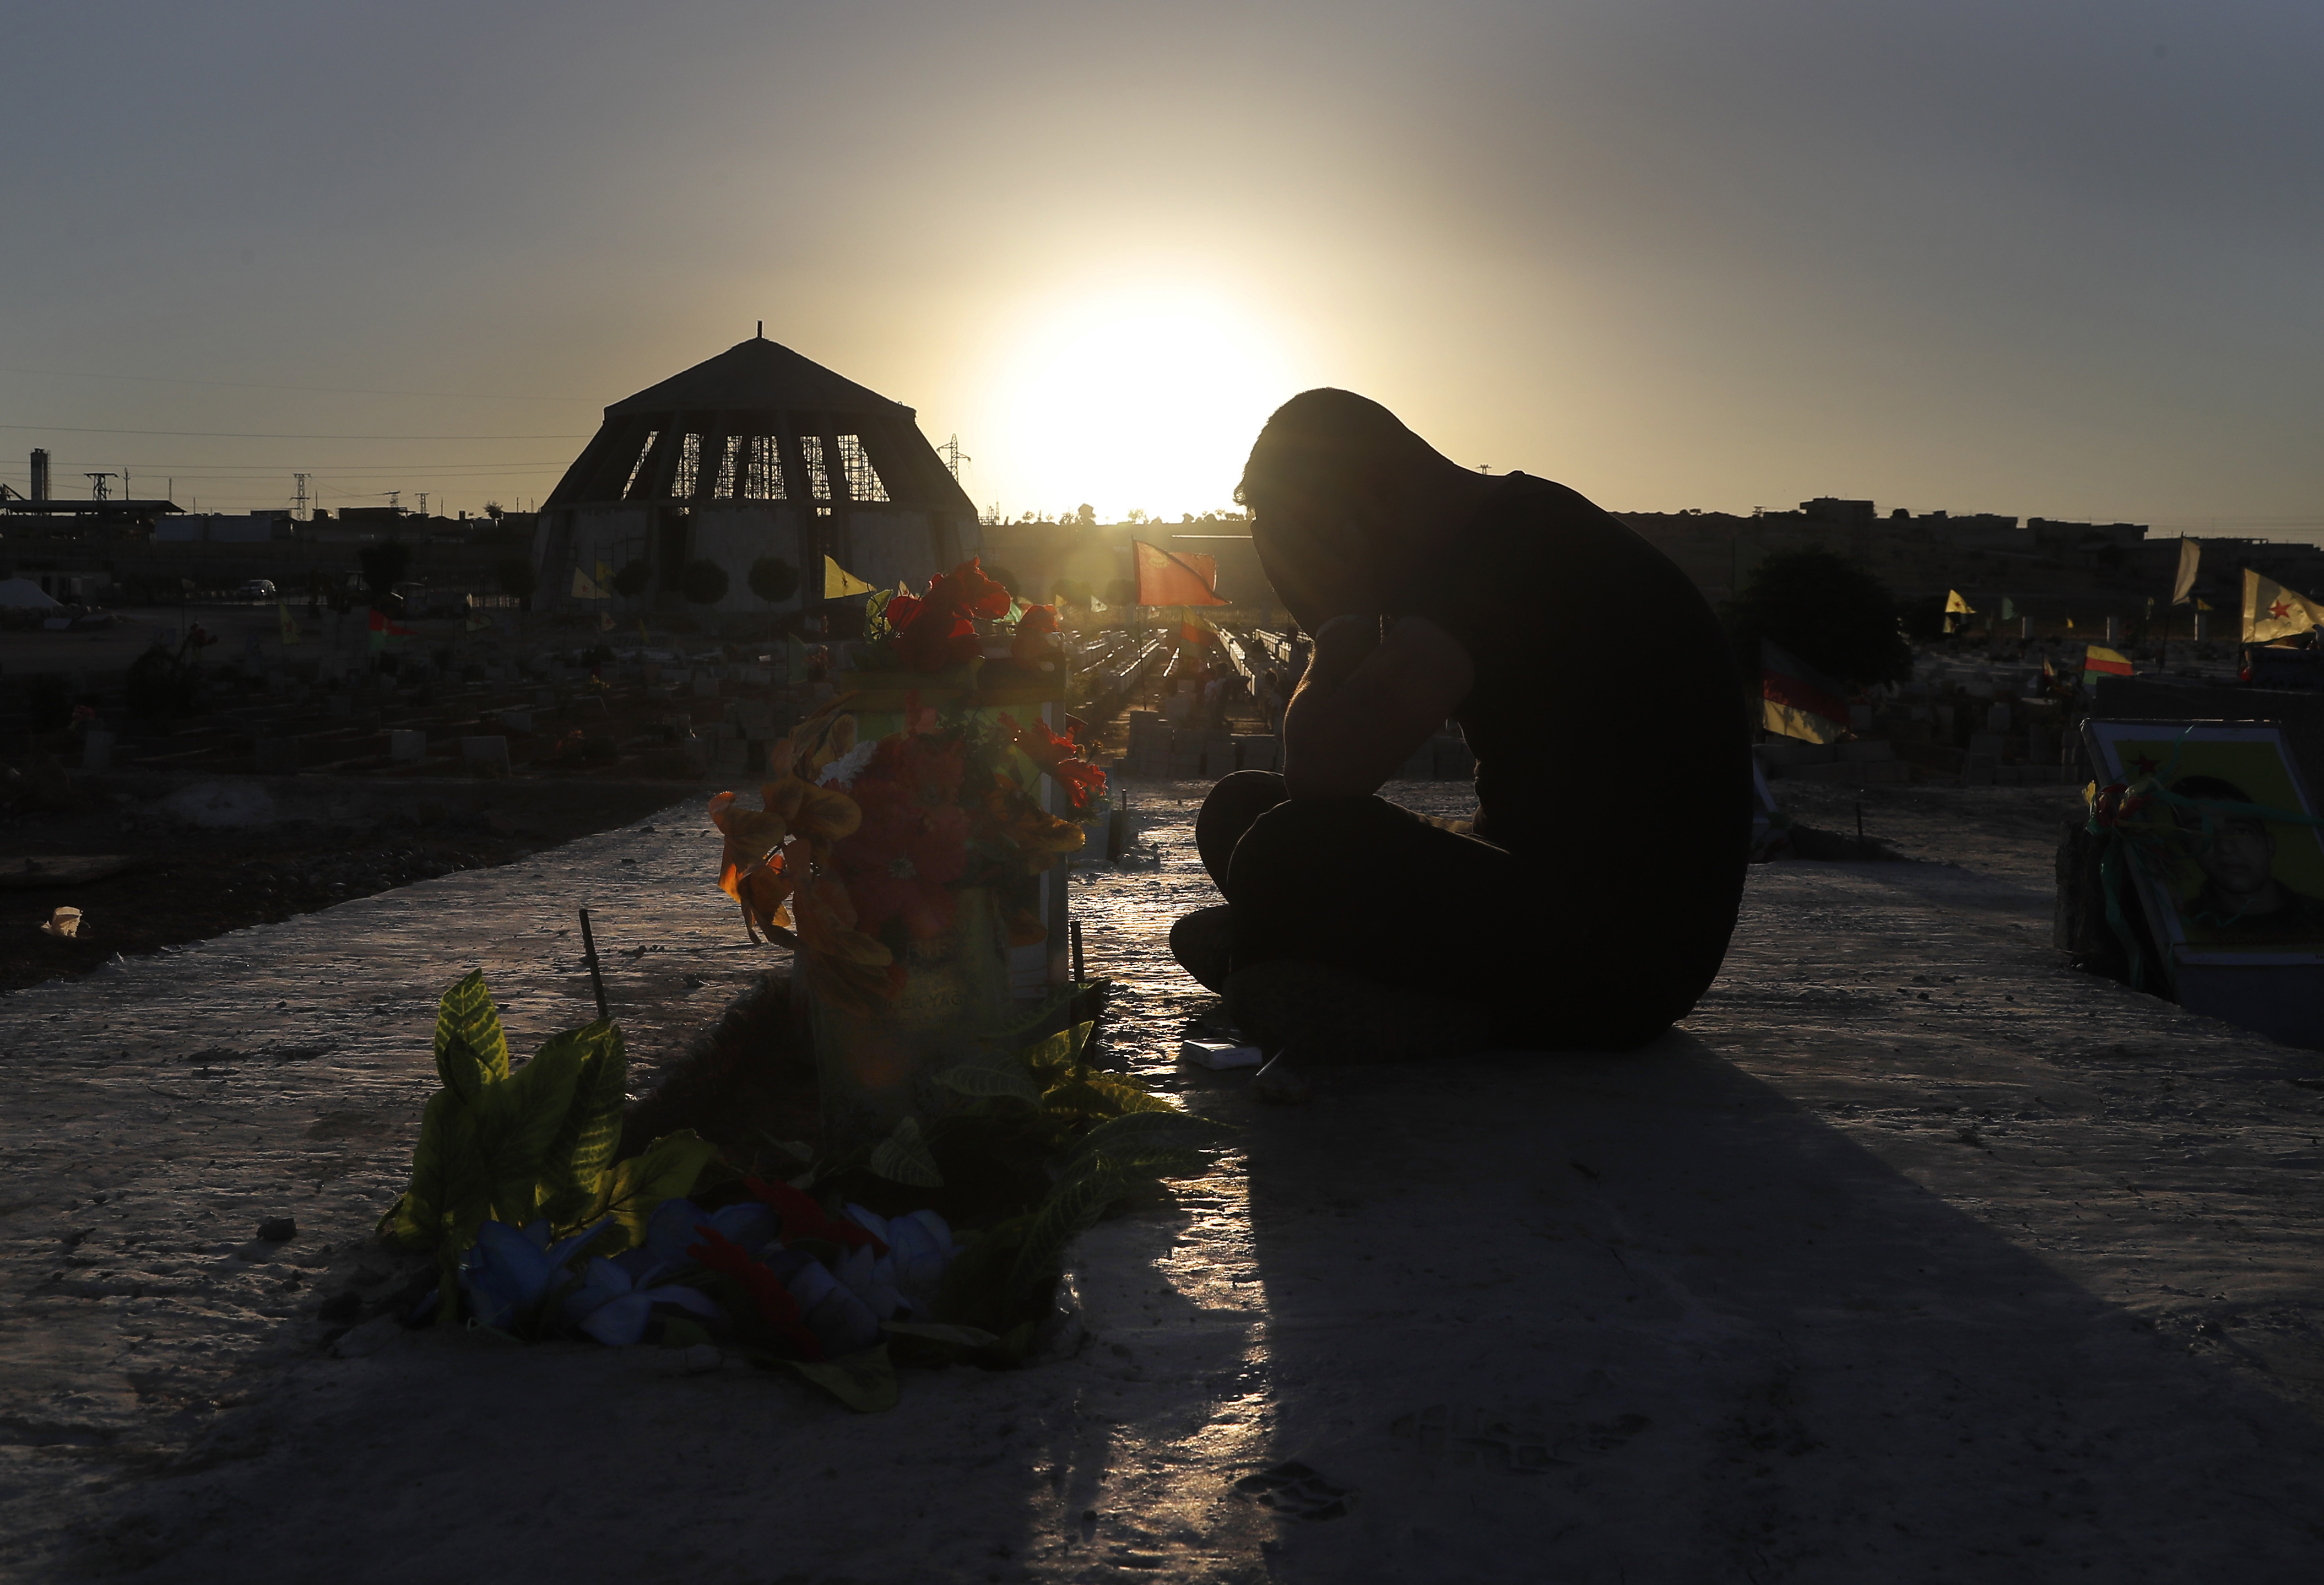 a Kurdish man mourns as he sits next to the grave of his friend who was killed while fighting against Islamic State militants in Raqqa, at a cemetery in Kobani, Syria, July 28, 2017.